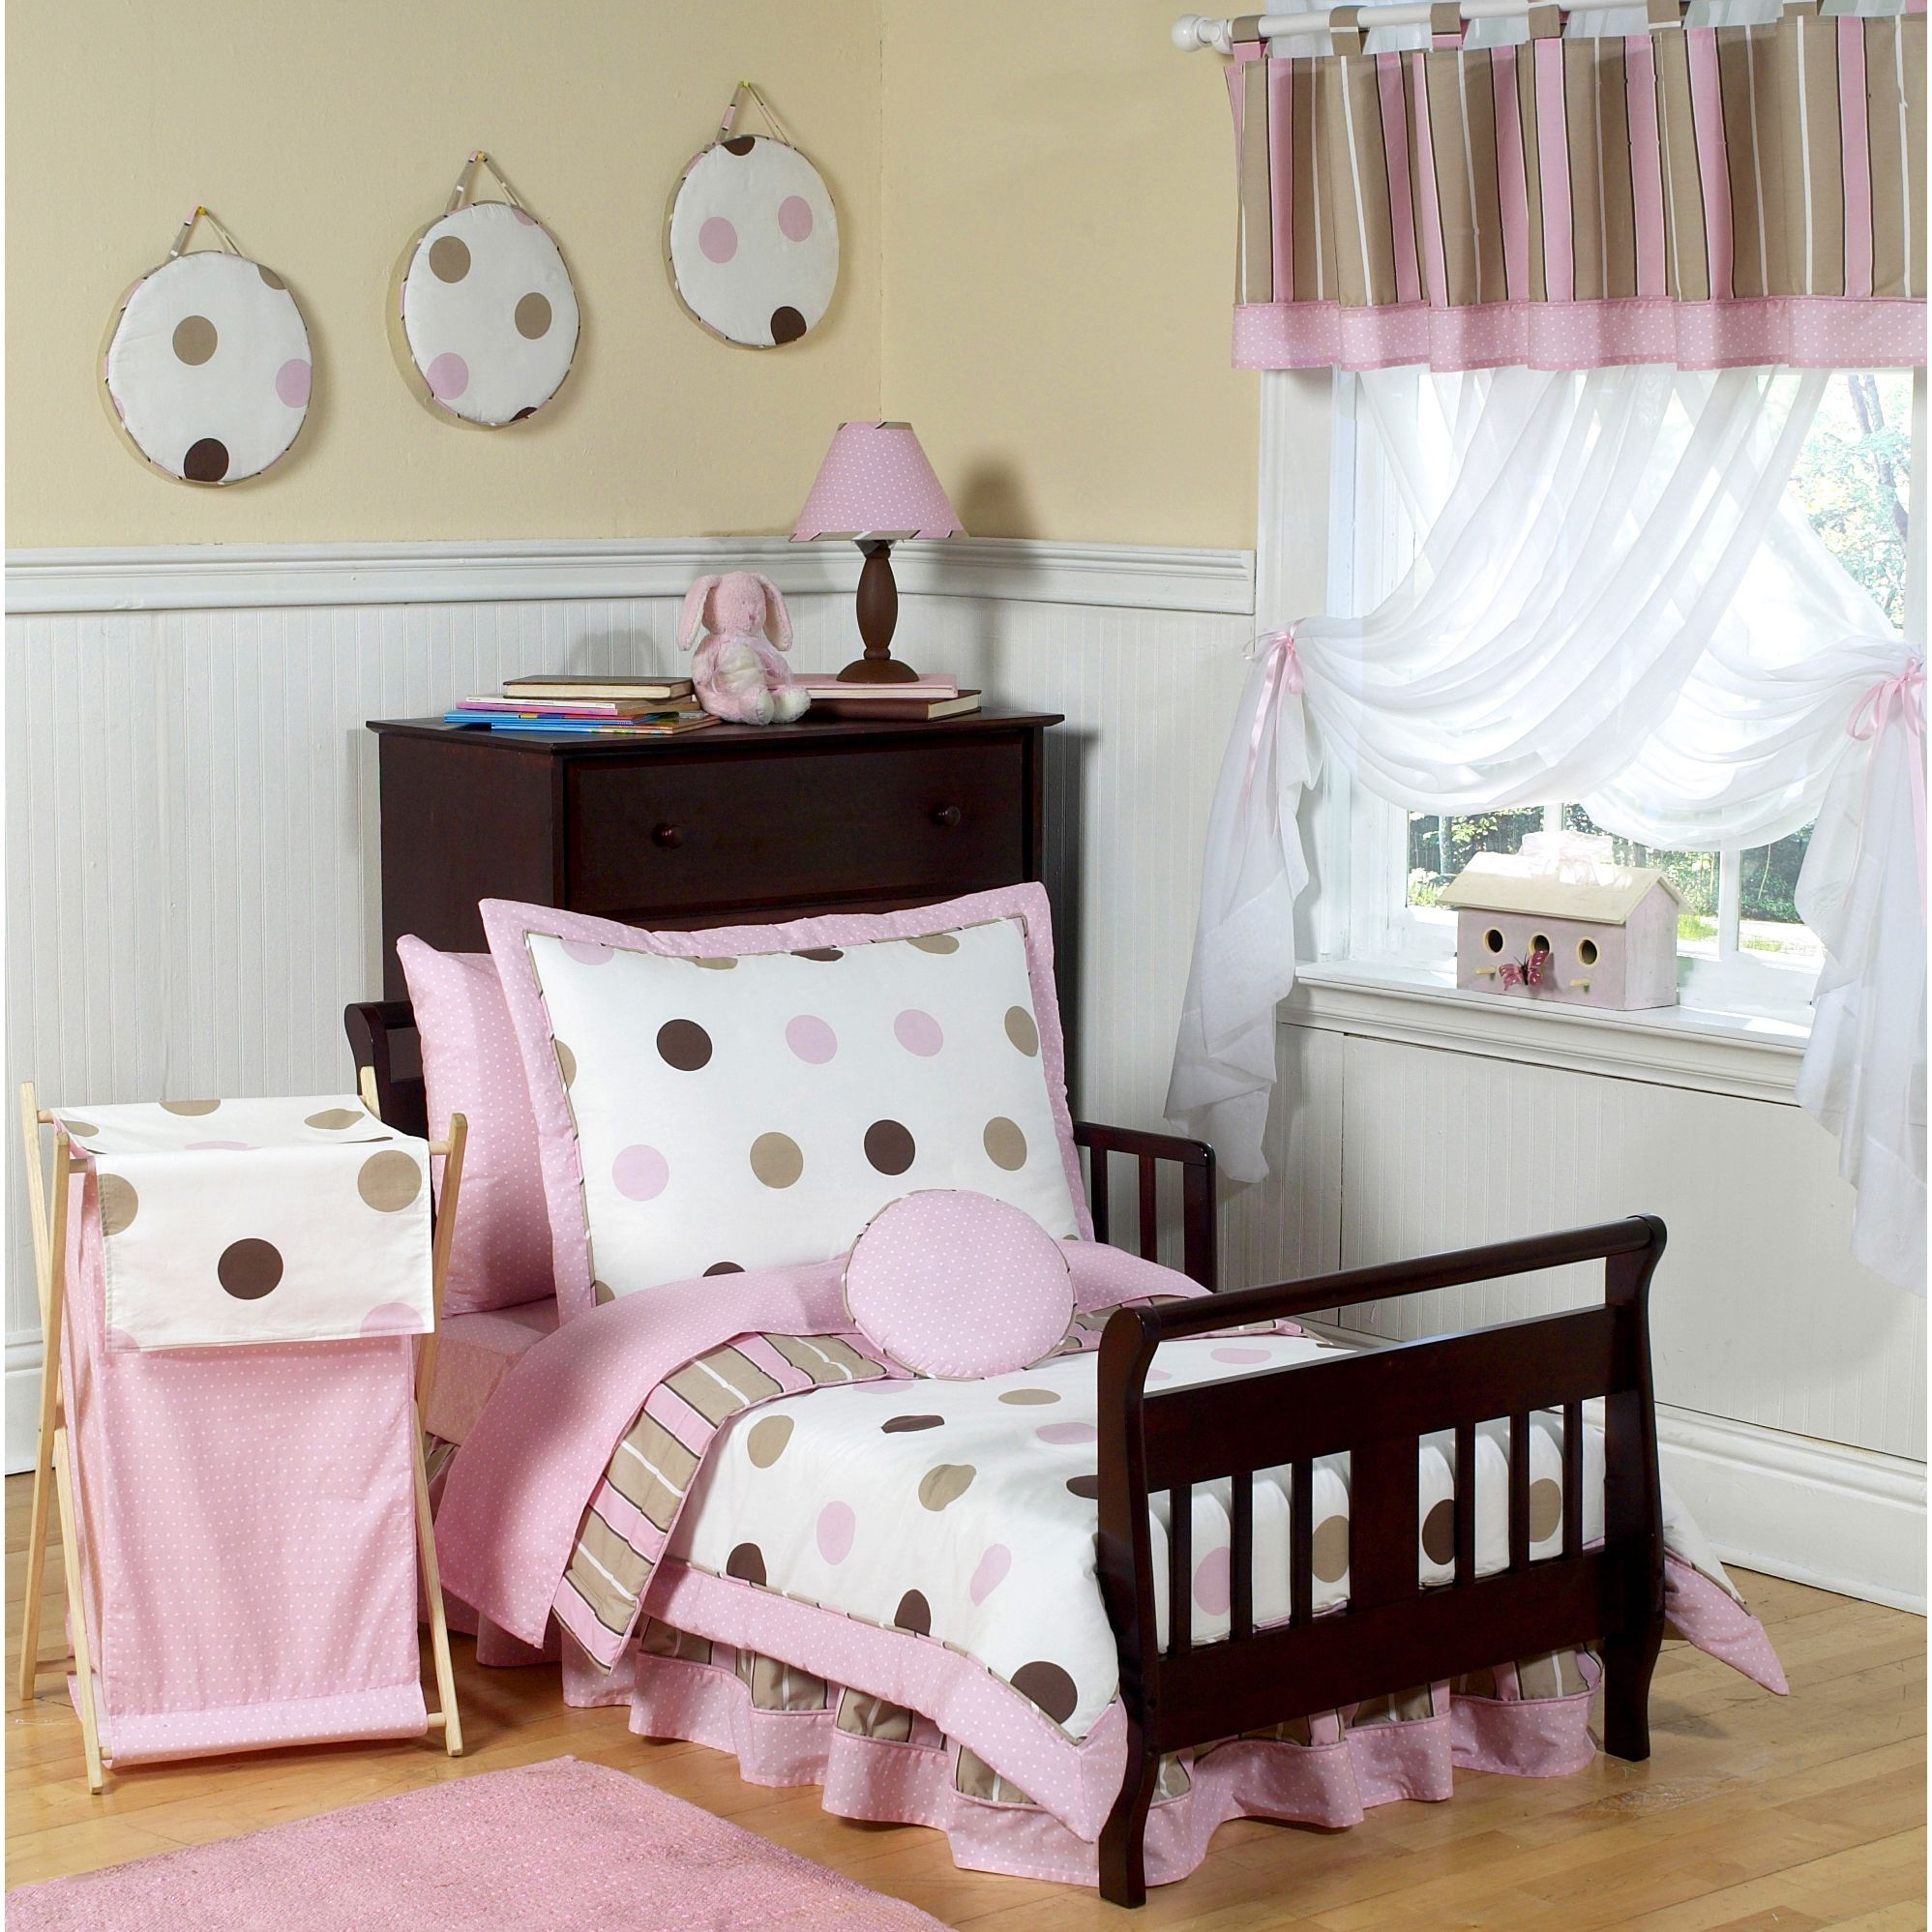 This Sweet Jojo Designs 5 Piece Toddler Bedding Ensemble